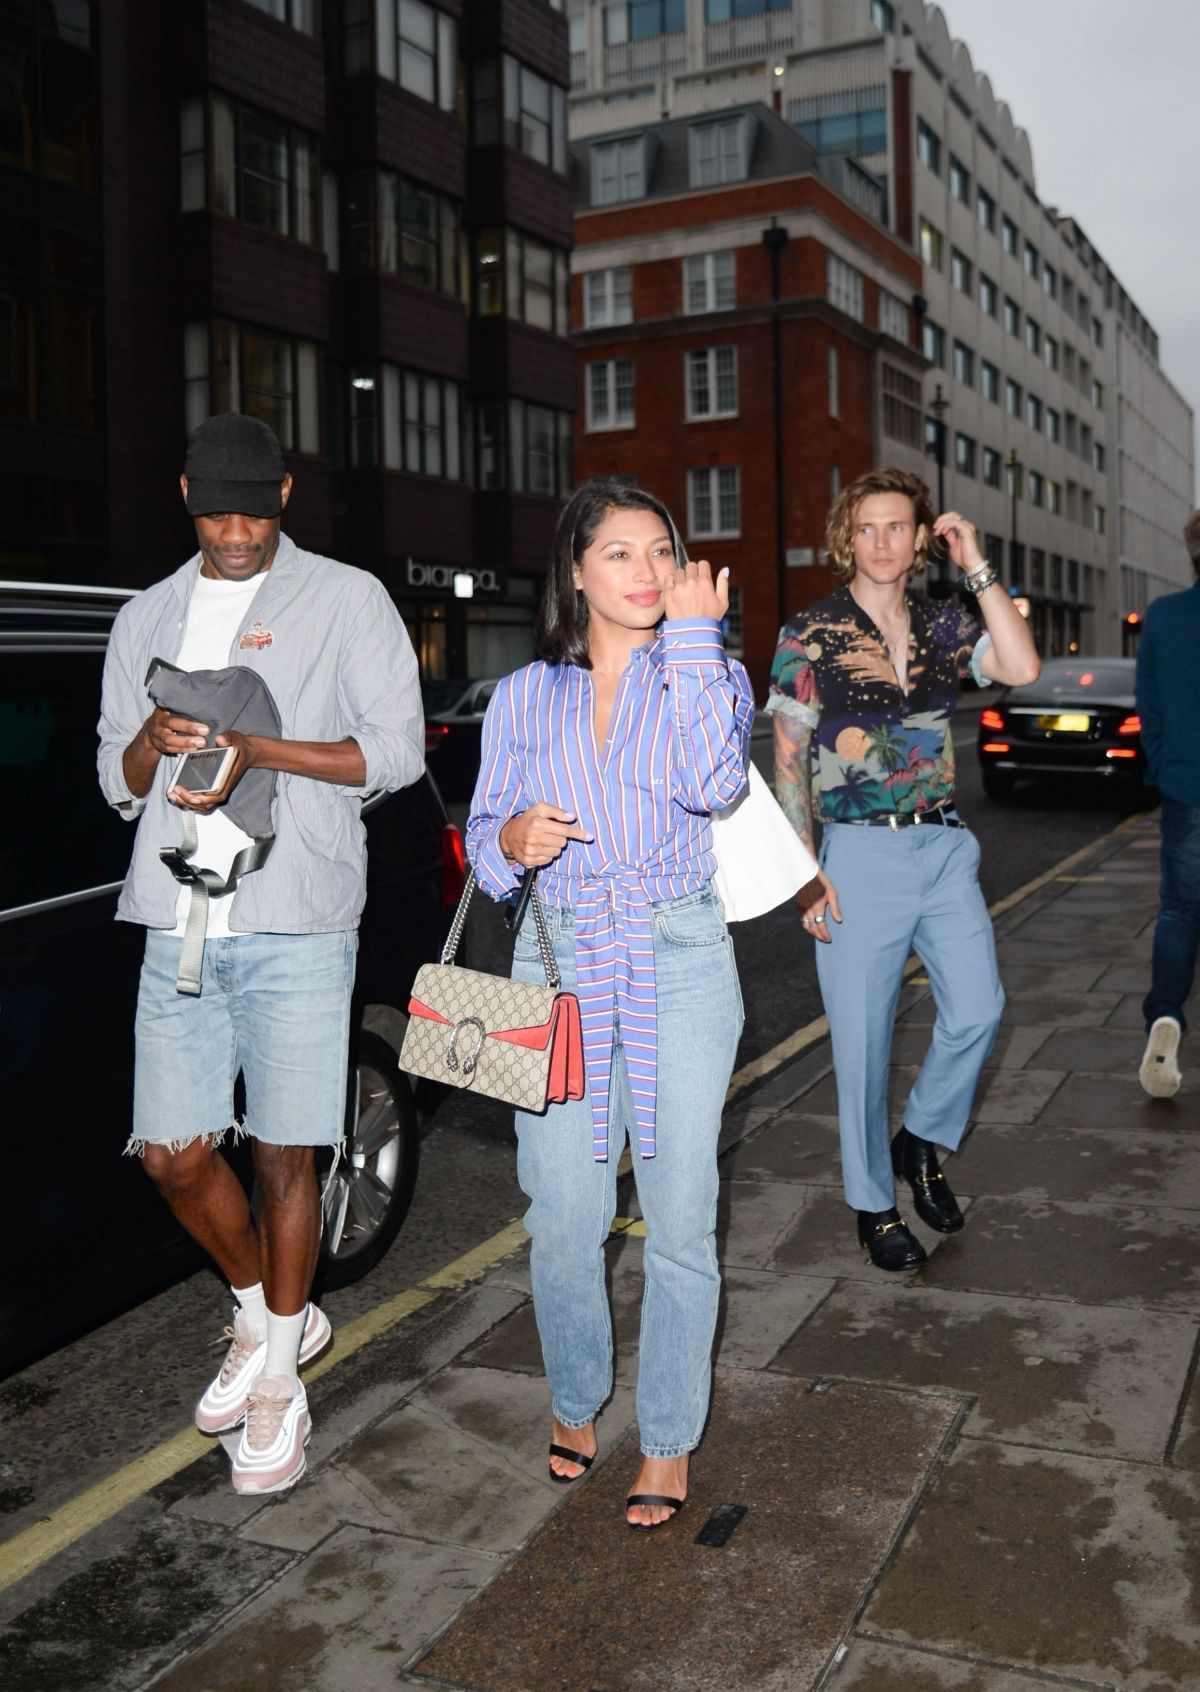 f486b2c7aaf Vanessa White Arrives at the LFW Men Daniel W. Fletcher x Christian  Louboutin Cocktail Party